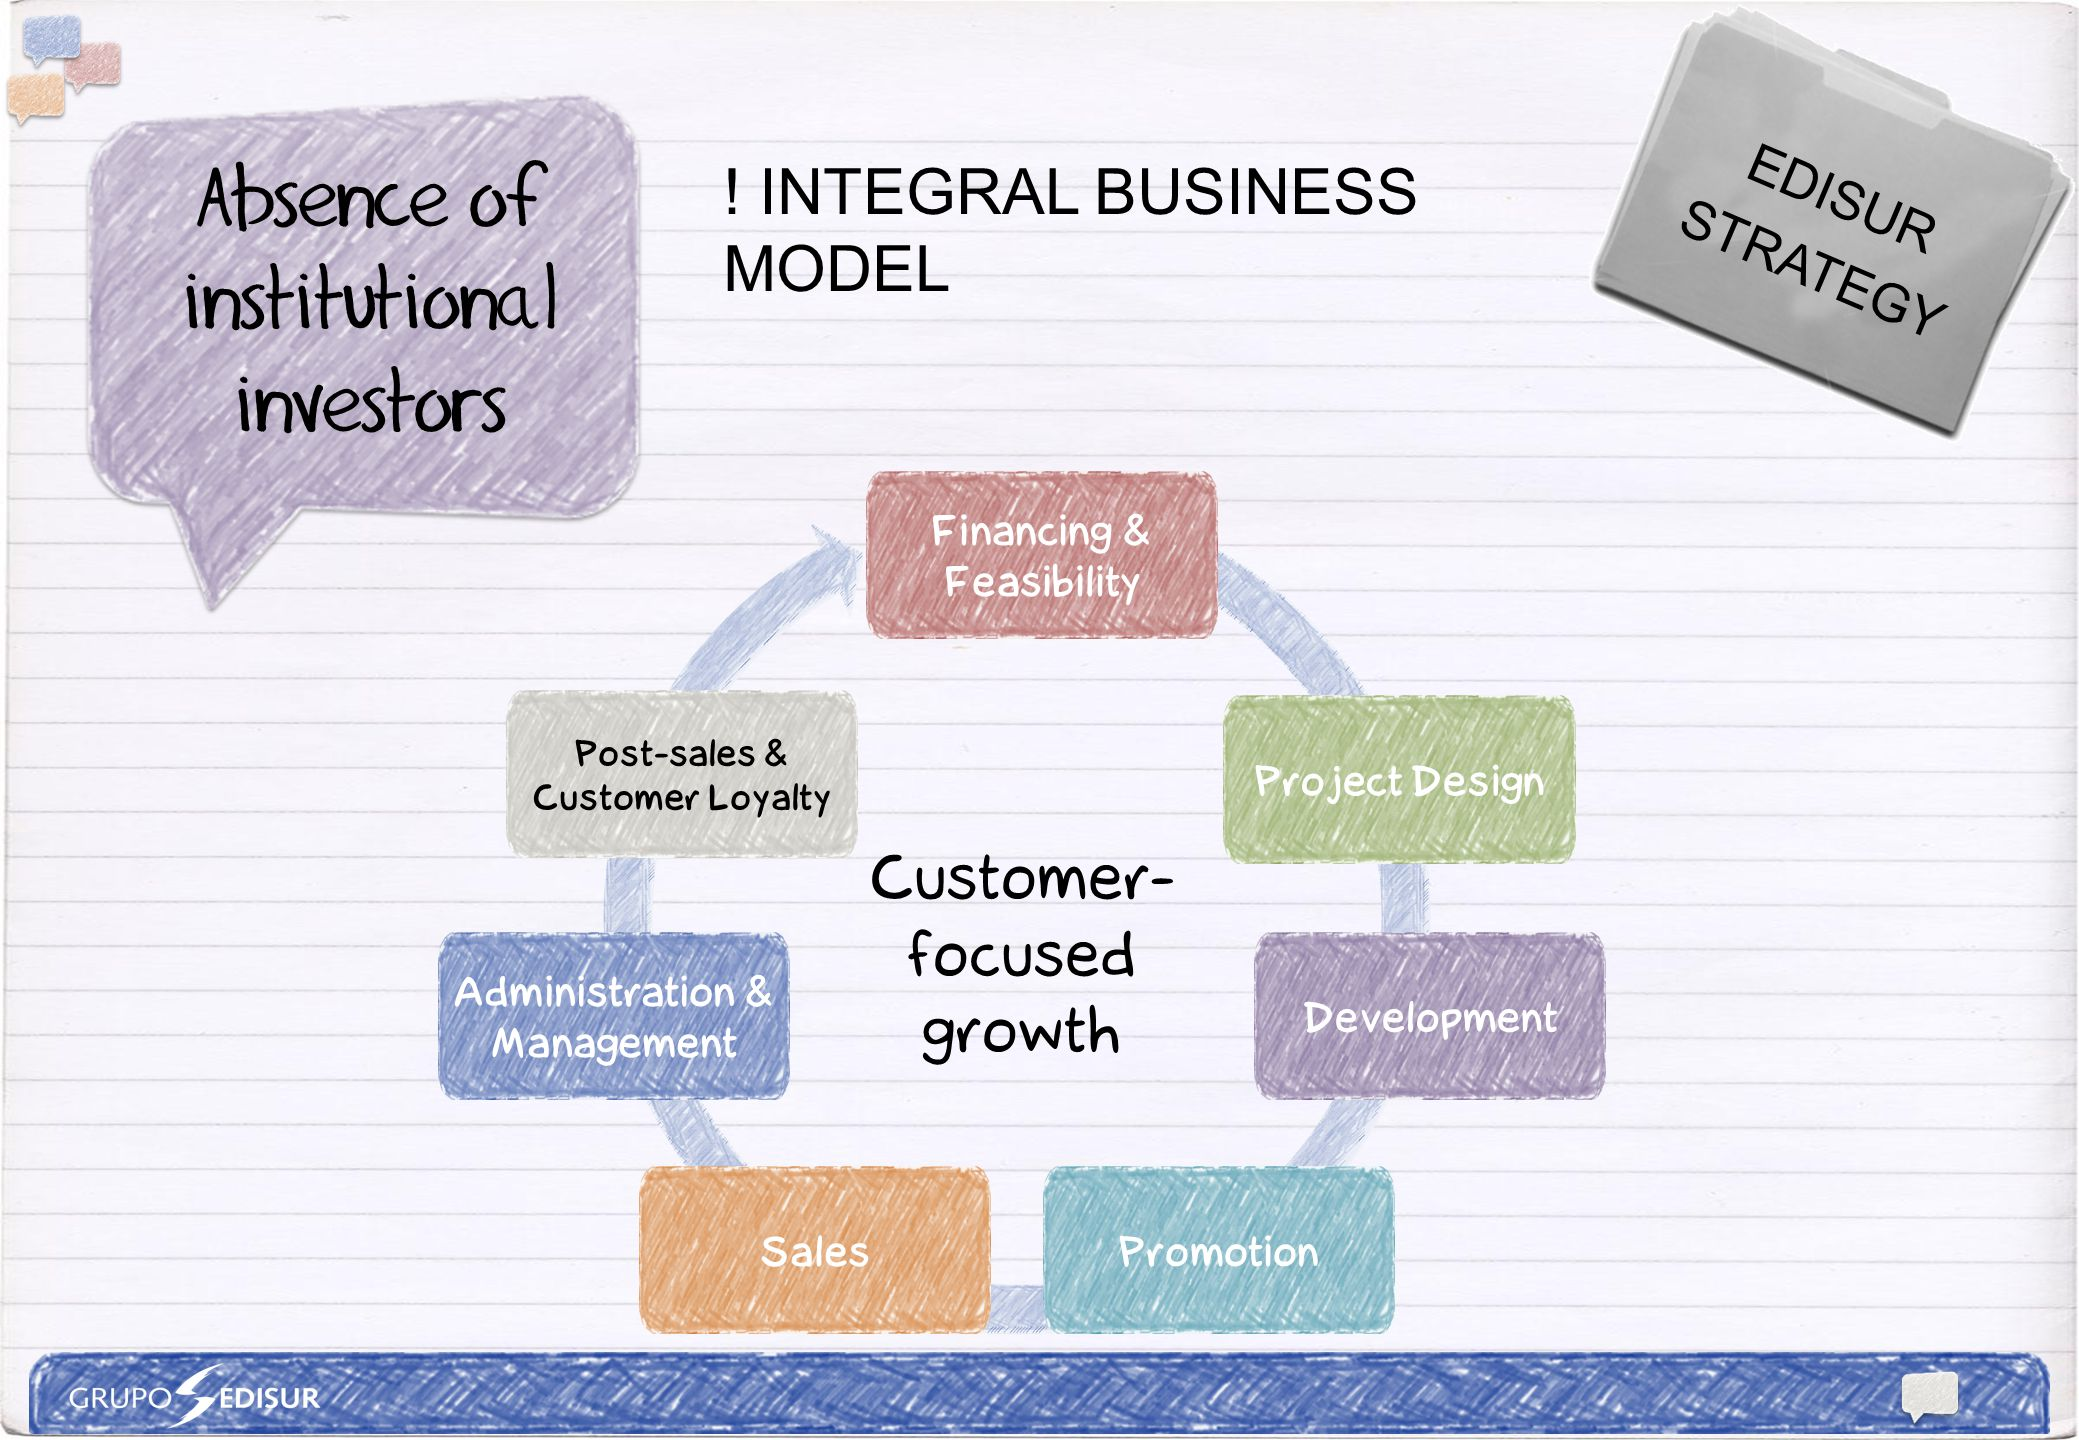 Customer- focused growth EDISUR STRATEGY .